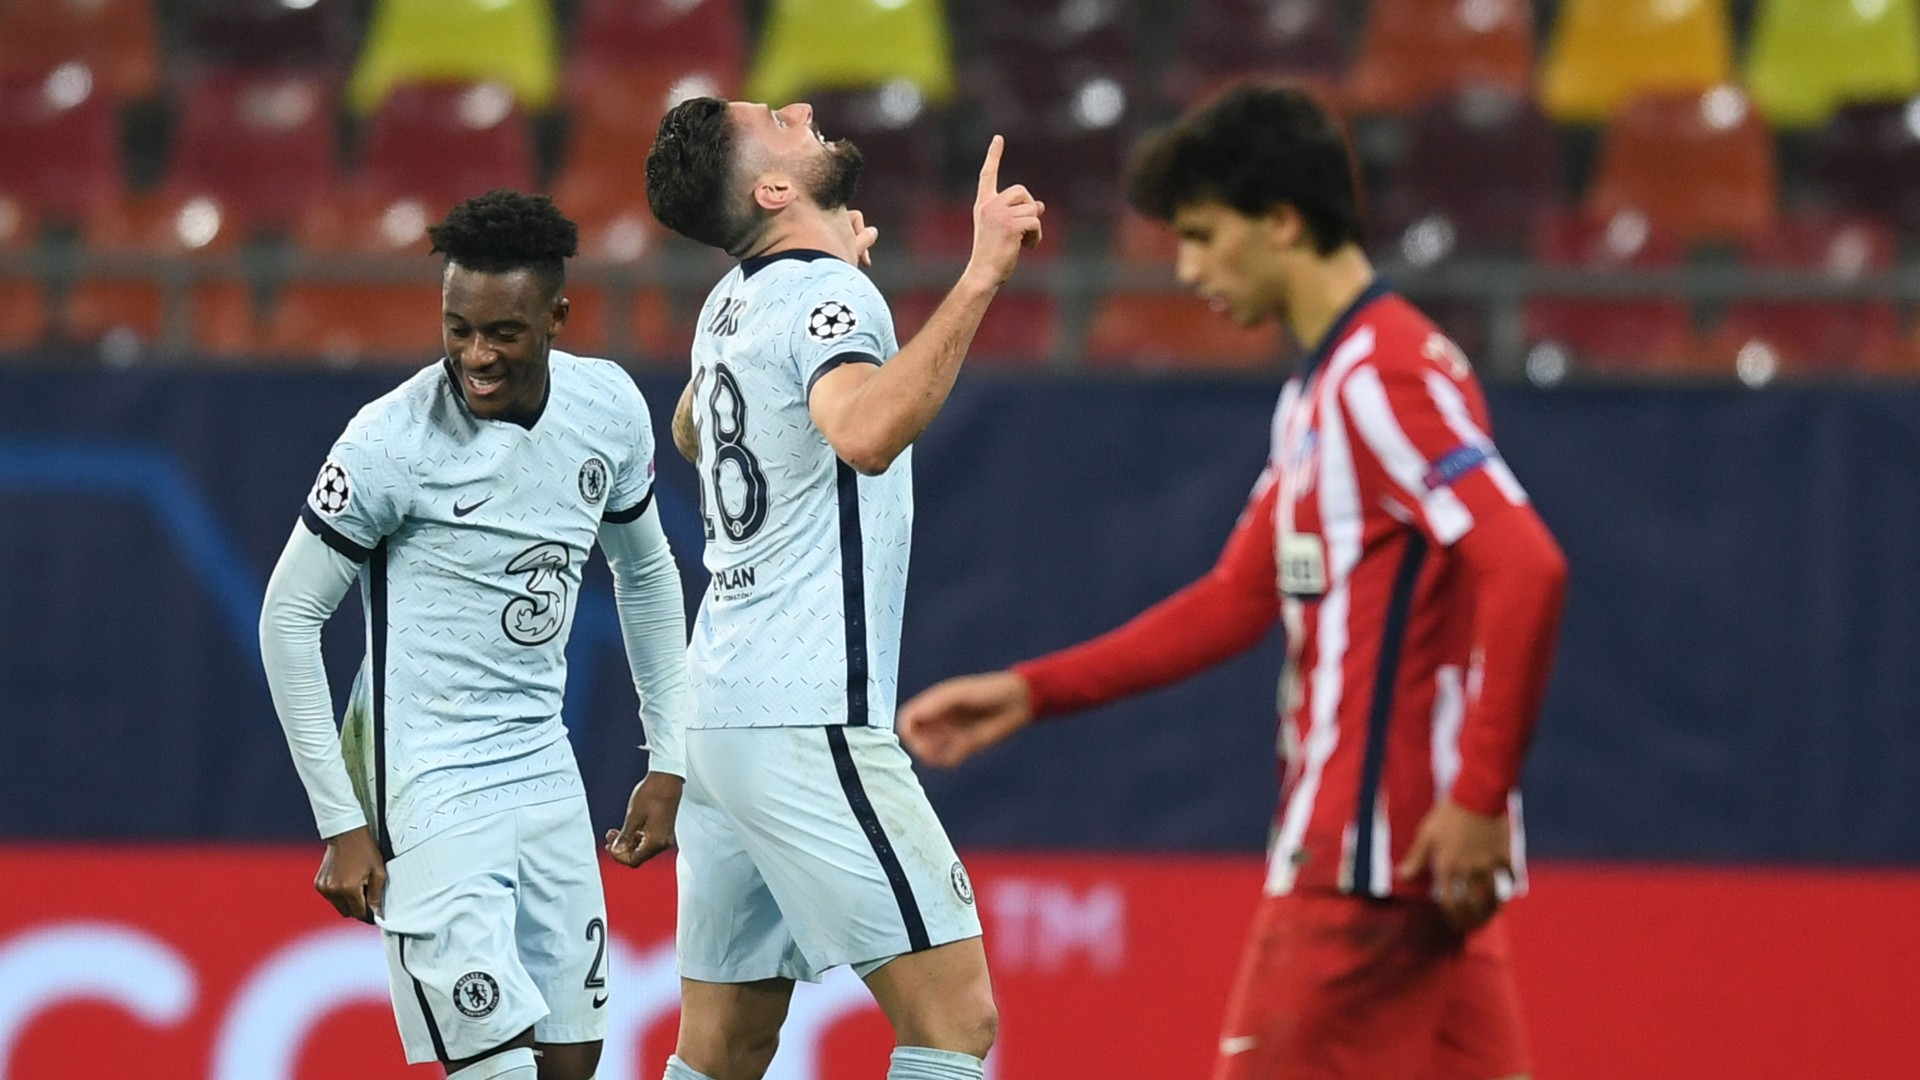 We had strong intentions to win - Chelsea deserved Champions League victory over Atletico says match winner Giroud